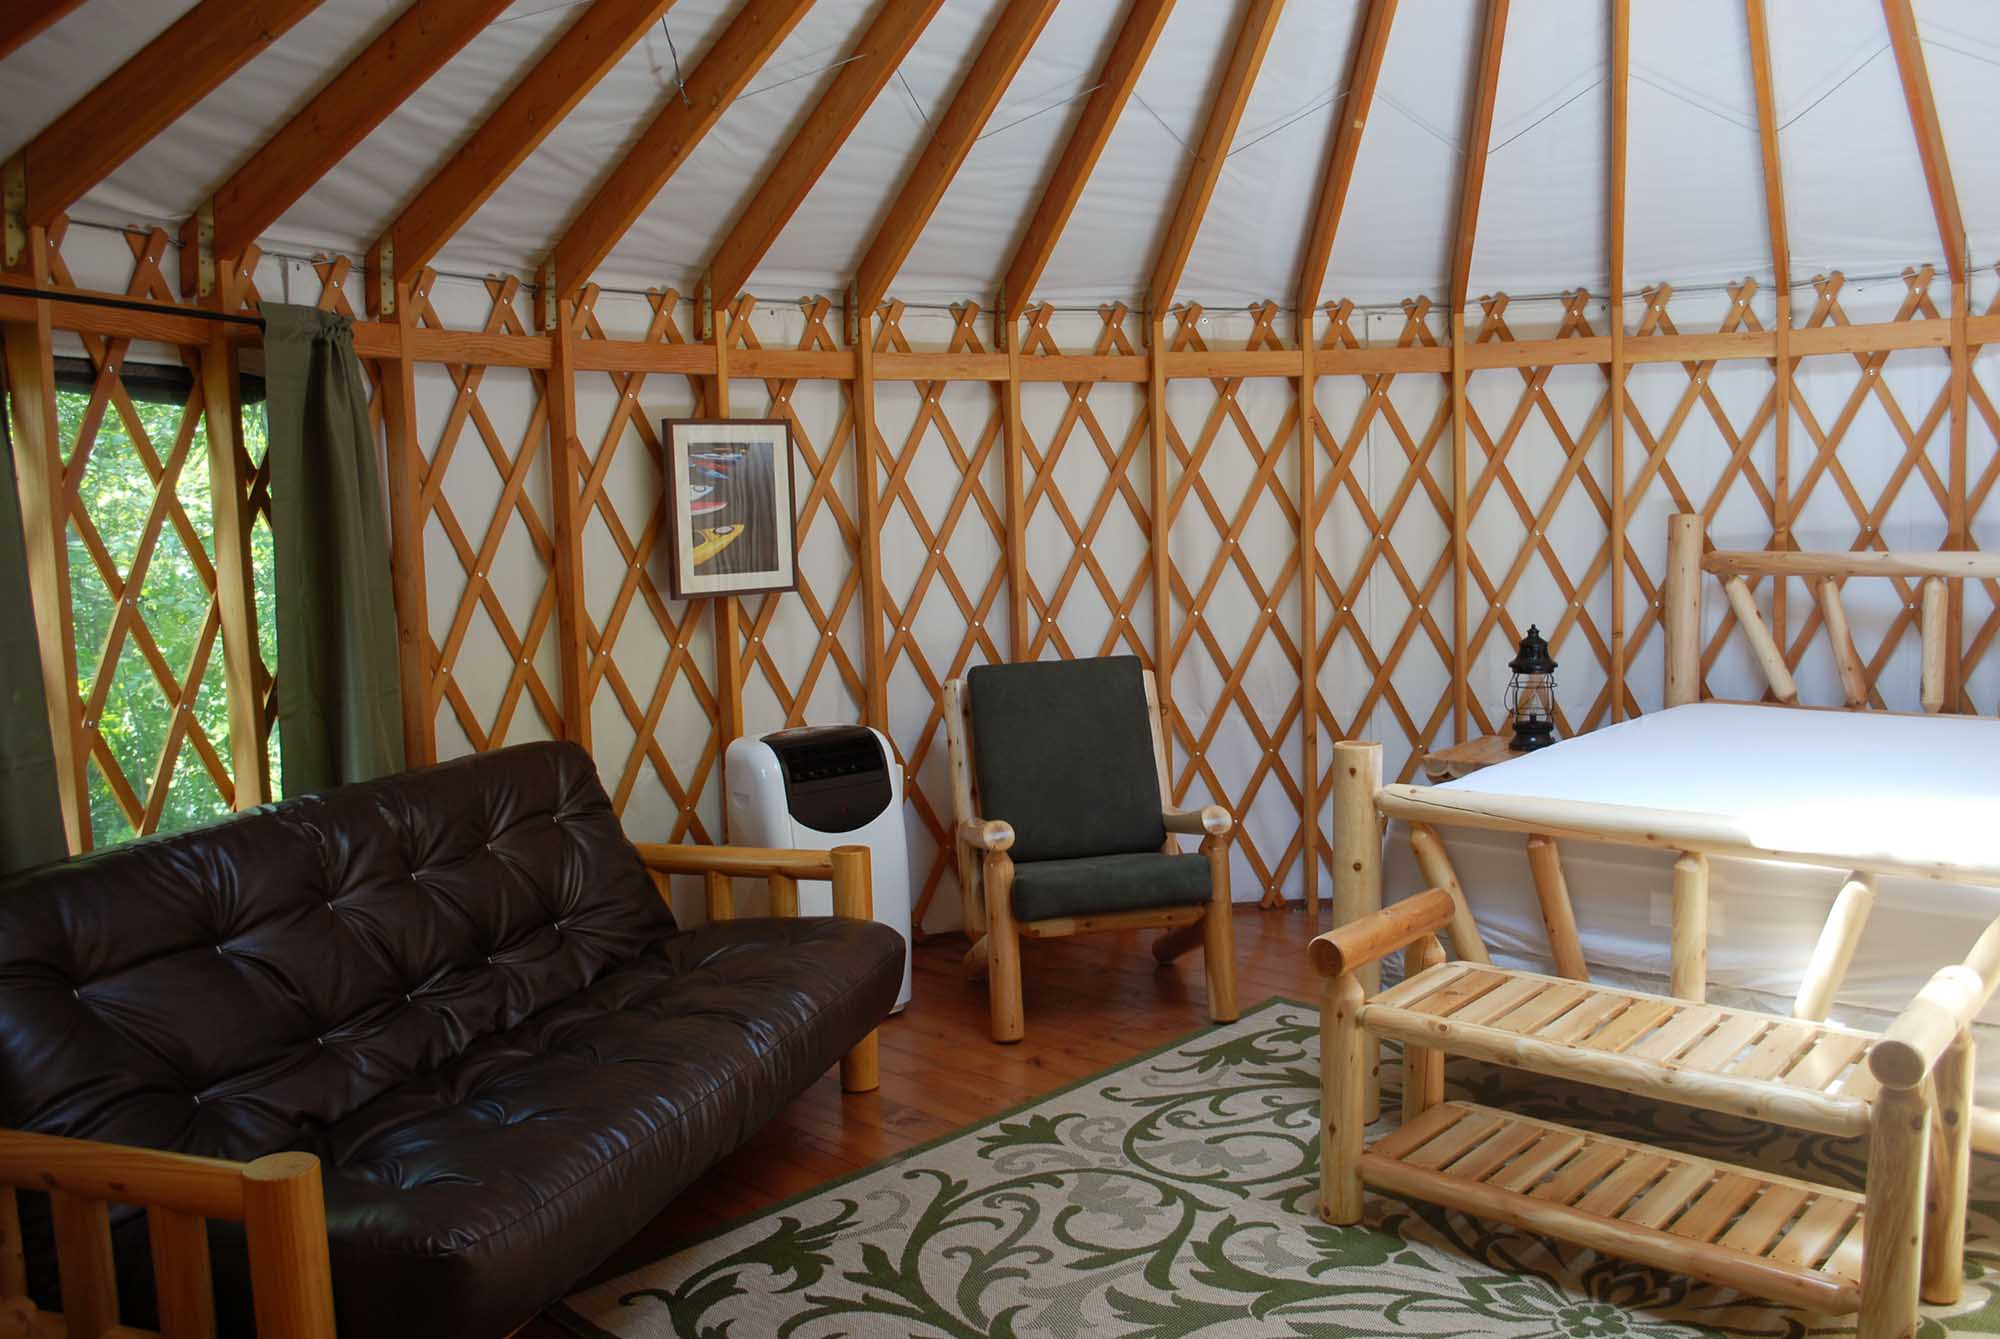 inside a yurt At Branches of Niagara campground